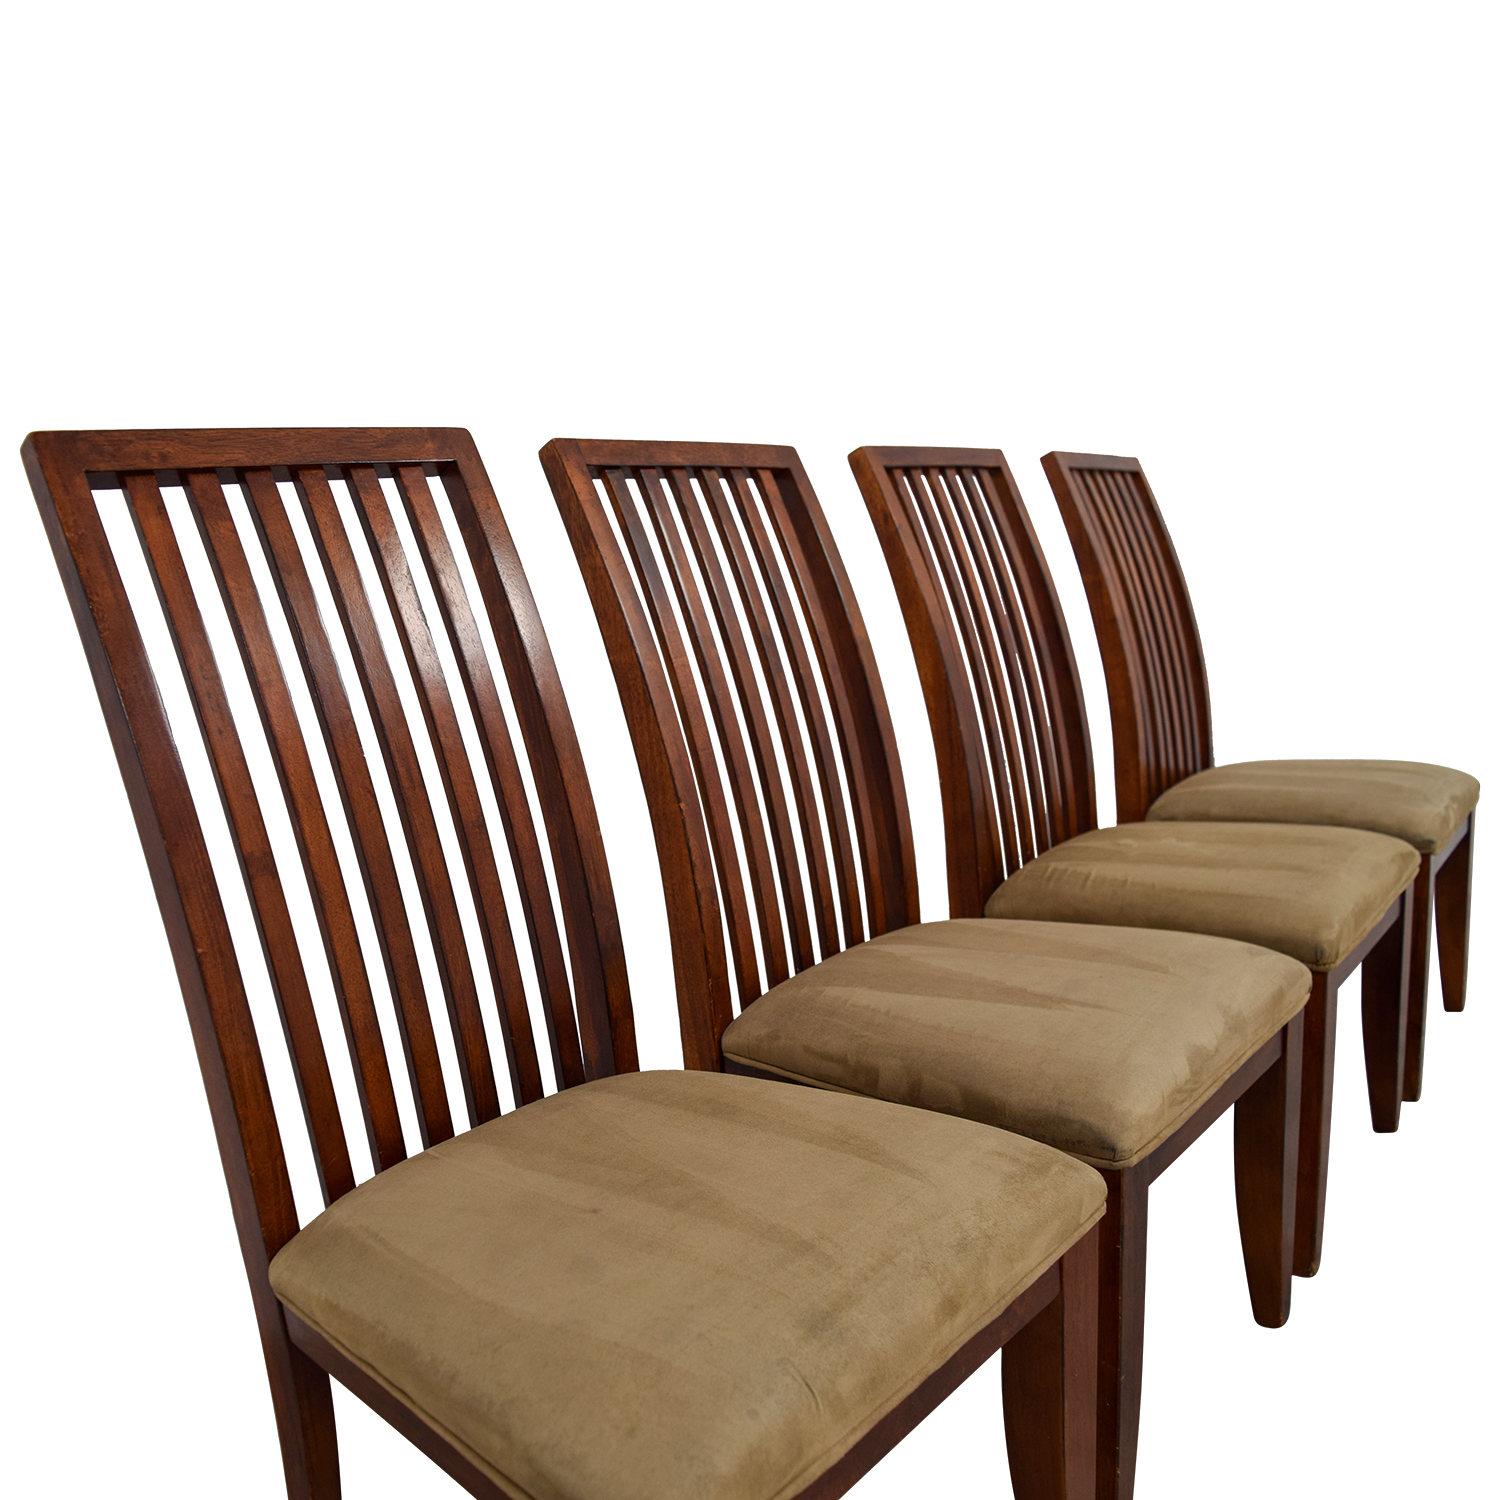 Macy's Macy's Tan Upholstered Dining Chairs / Chairs